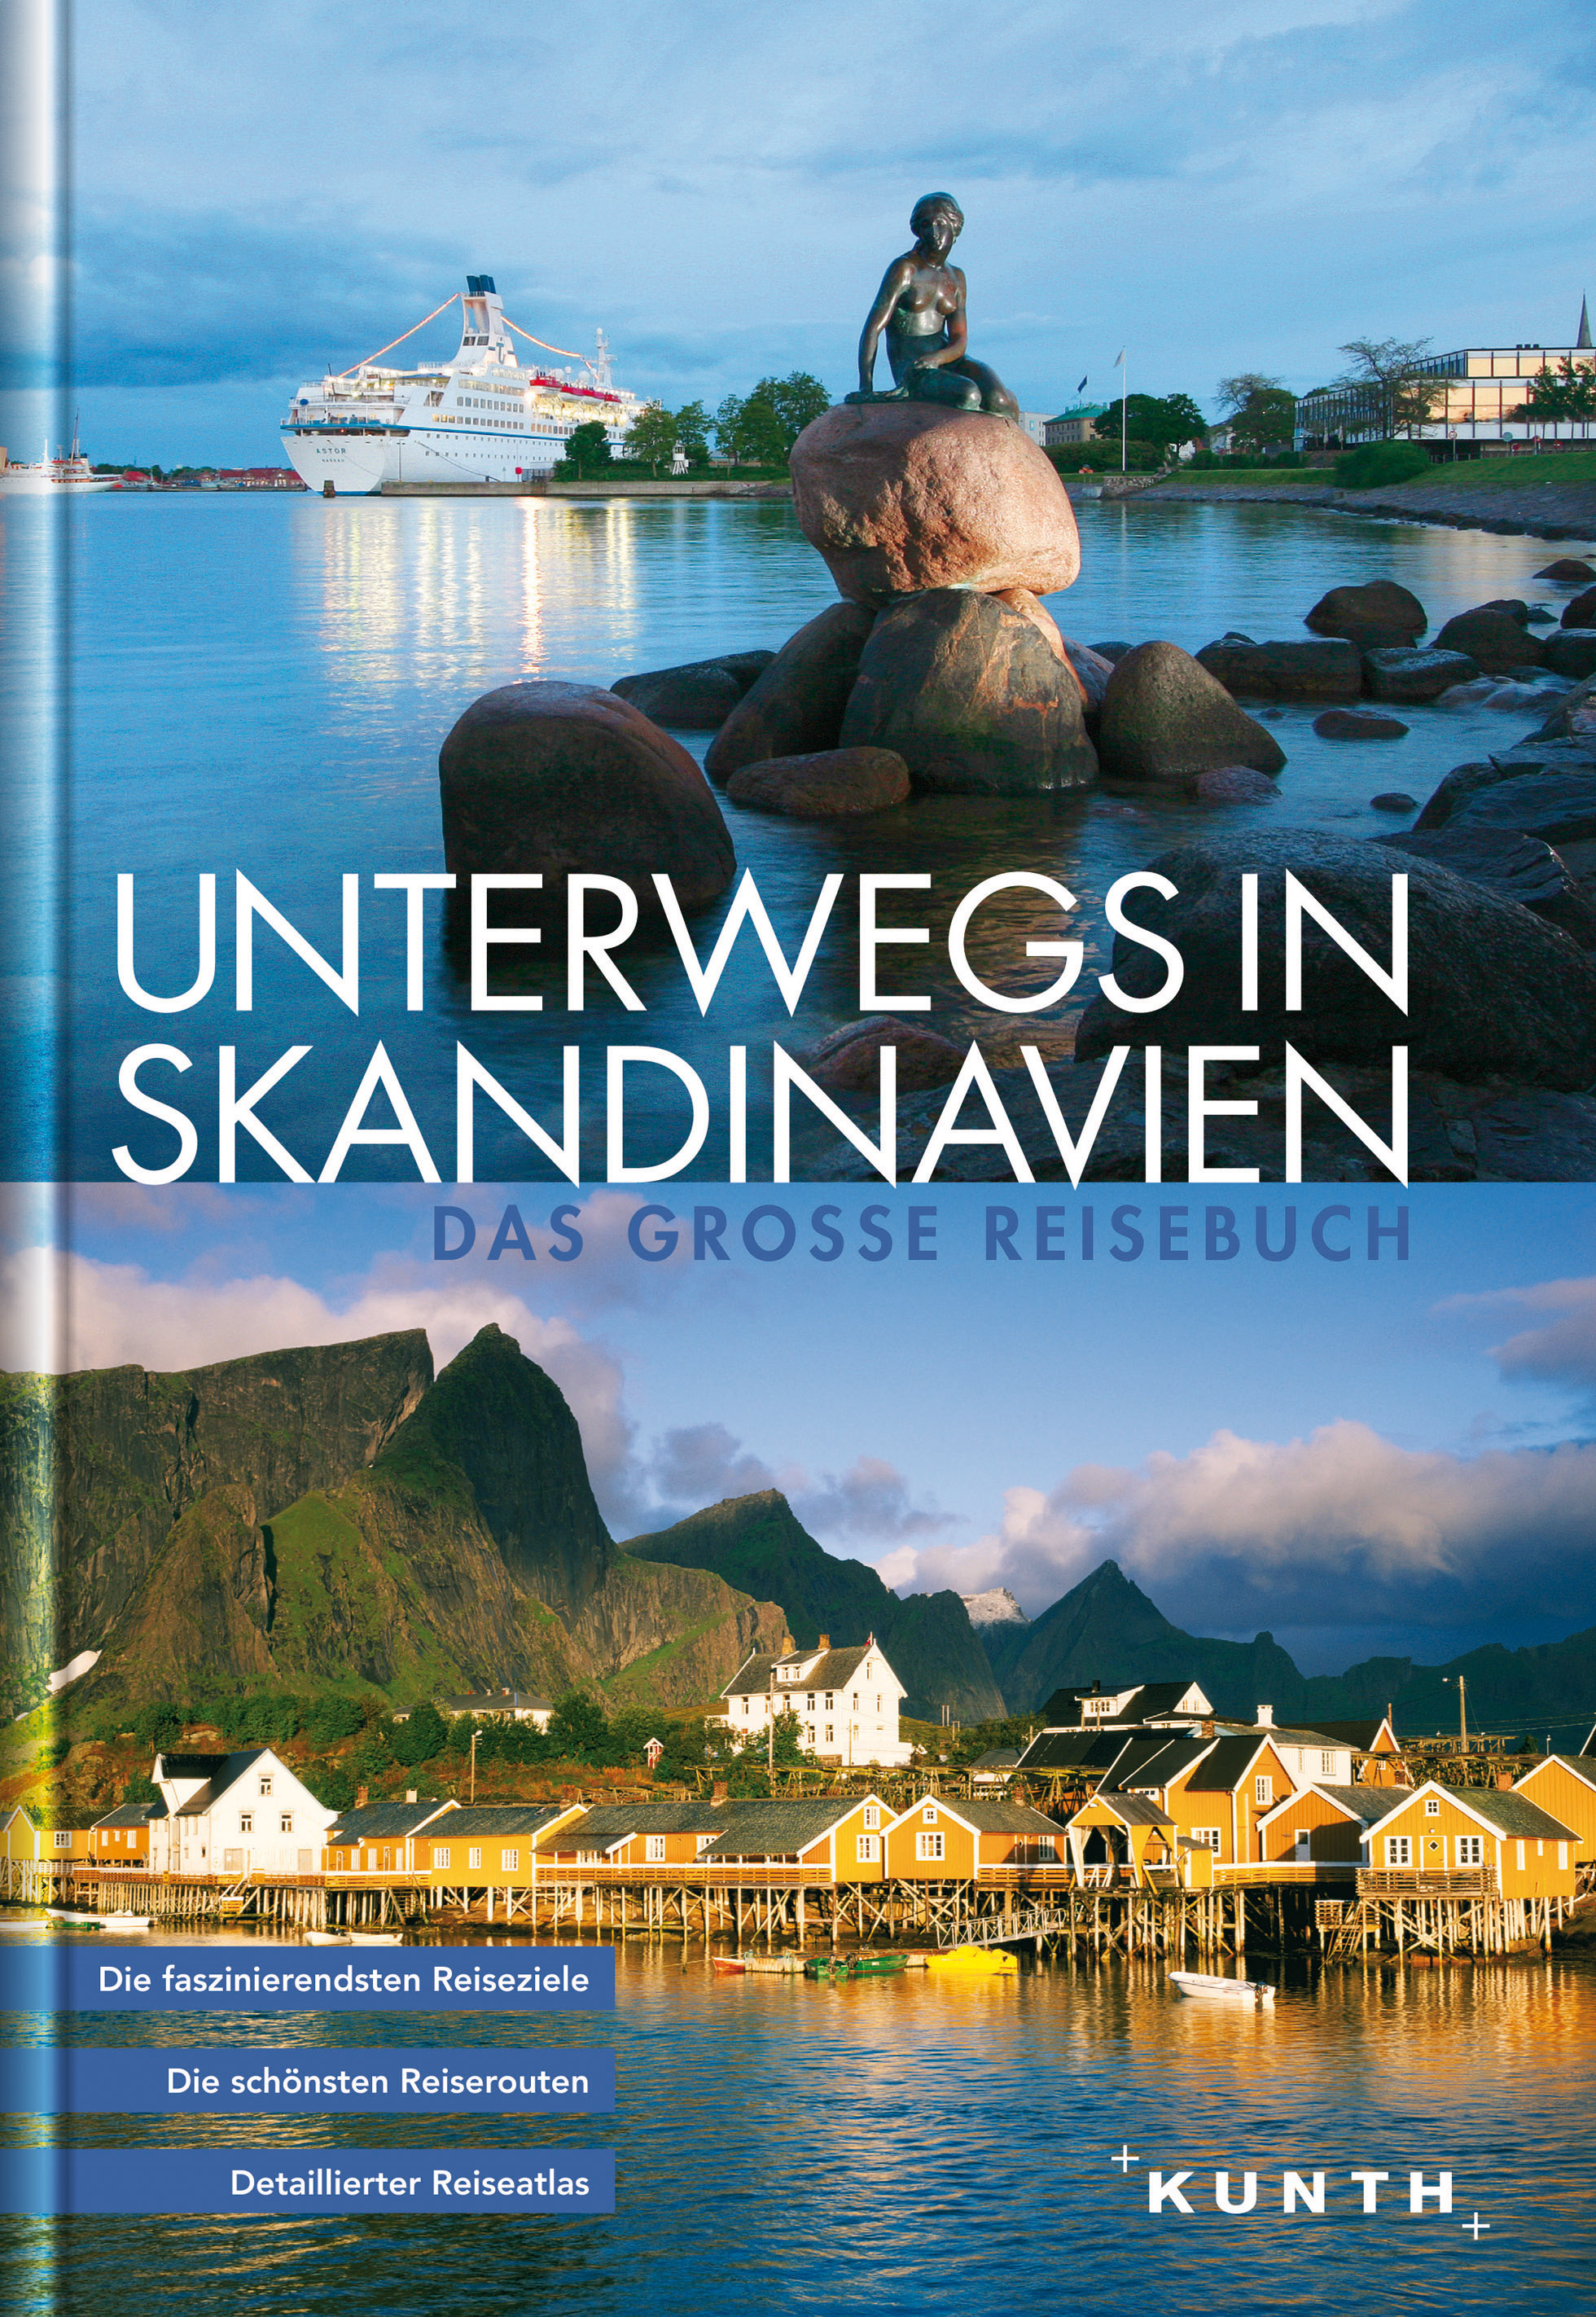 Reisgids - fotoboek Unterwegs in Skandinavien Scandinavie   Kunth